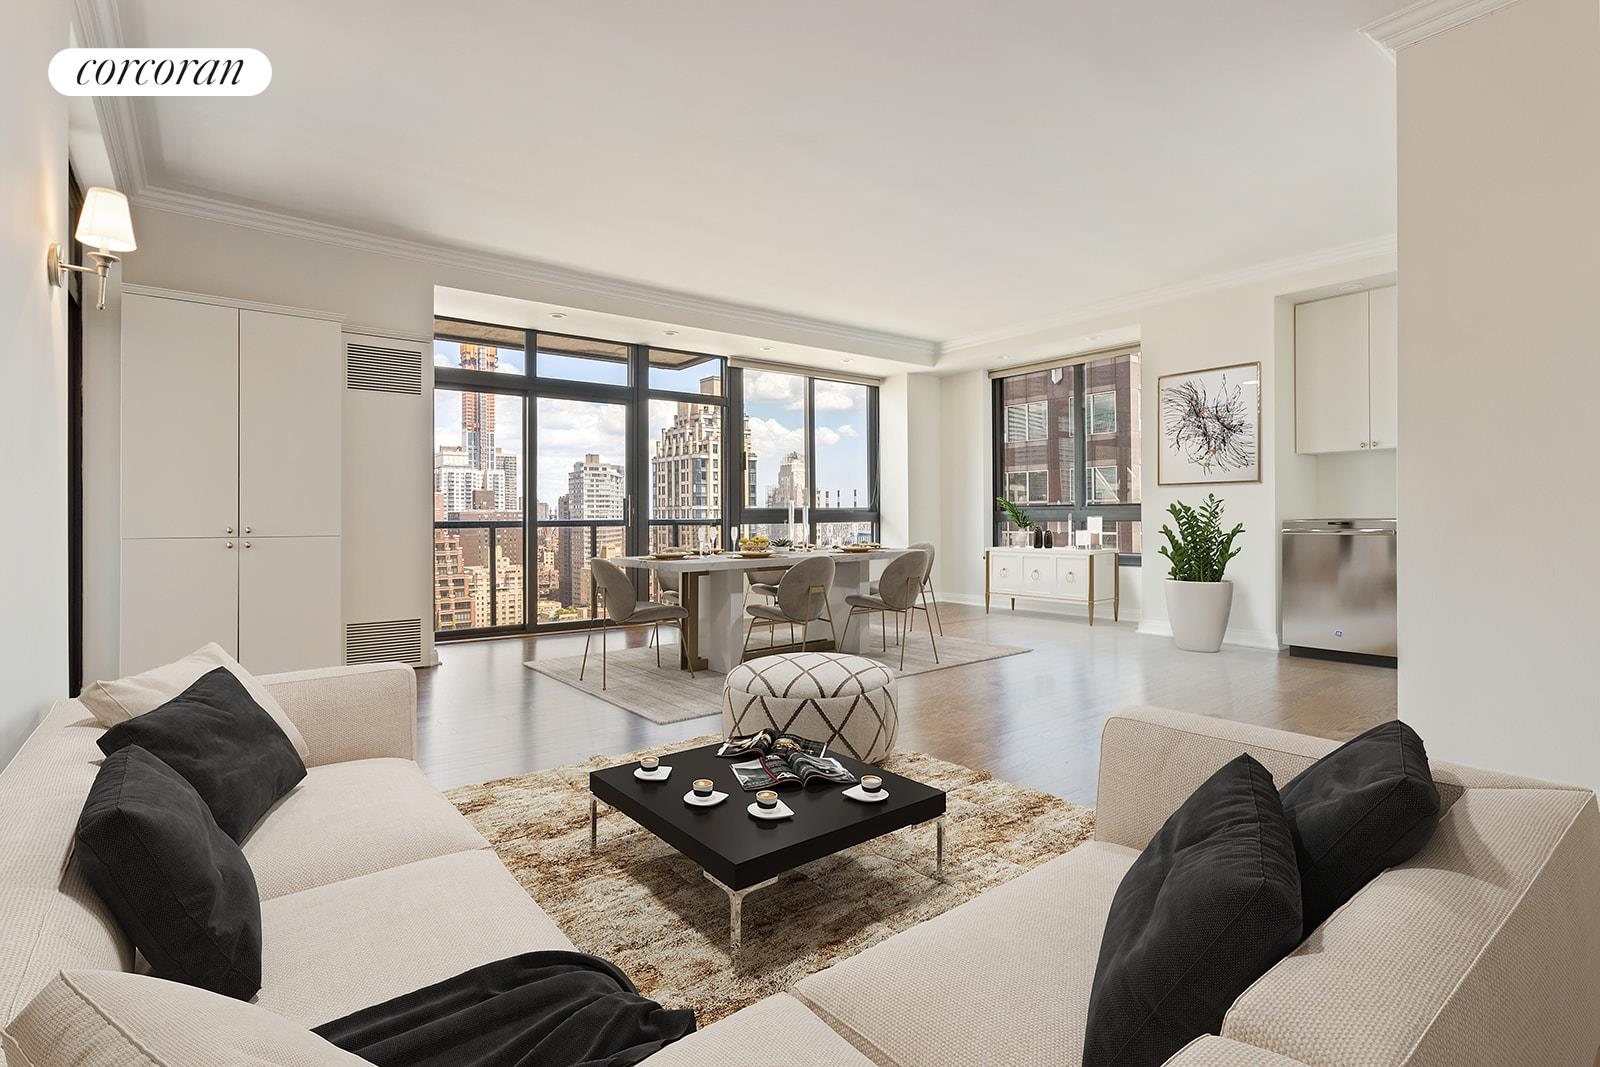 Pristine and Renovated with stunning views for this massive 1 bedroom.Wraparound Terrace – NYC Skyline Views over Midtown facing North & East completely unobstructed from 30th Floor. Fabulous 1250 Sq. Ft. Extra Large 1 Bedroom with an abundance of outfitted closets. Separate home office area tucked away in living room corner with internet access and built-in storage.Renovated Kitchen with brand new range and cabinets to the ceiling. All closets fully outfitted with storage to create this ideal turn-key residence.Primary bathroom features oversized jetted bathtub and separate stall shower. Powder room just off living room for privacy & convenience.New wood floors throughout give a warm luxurious aesthetic and compliment the floor to ceiling Sliding Glass doors to terrace producing wall to wall skyline views.Pet Policy: 1 dog under 50 pounds for tenants as per condominium rules.Broker fee paid by tenant